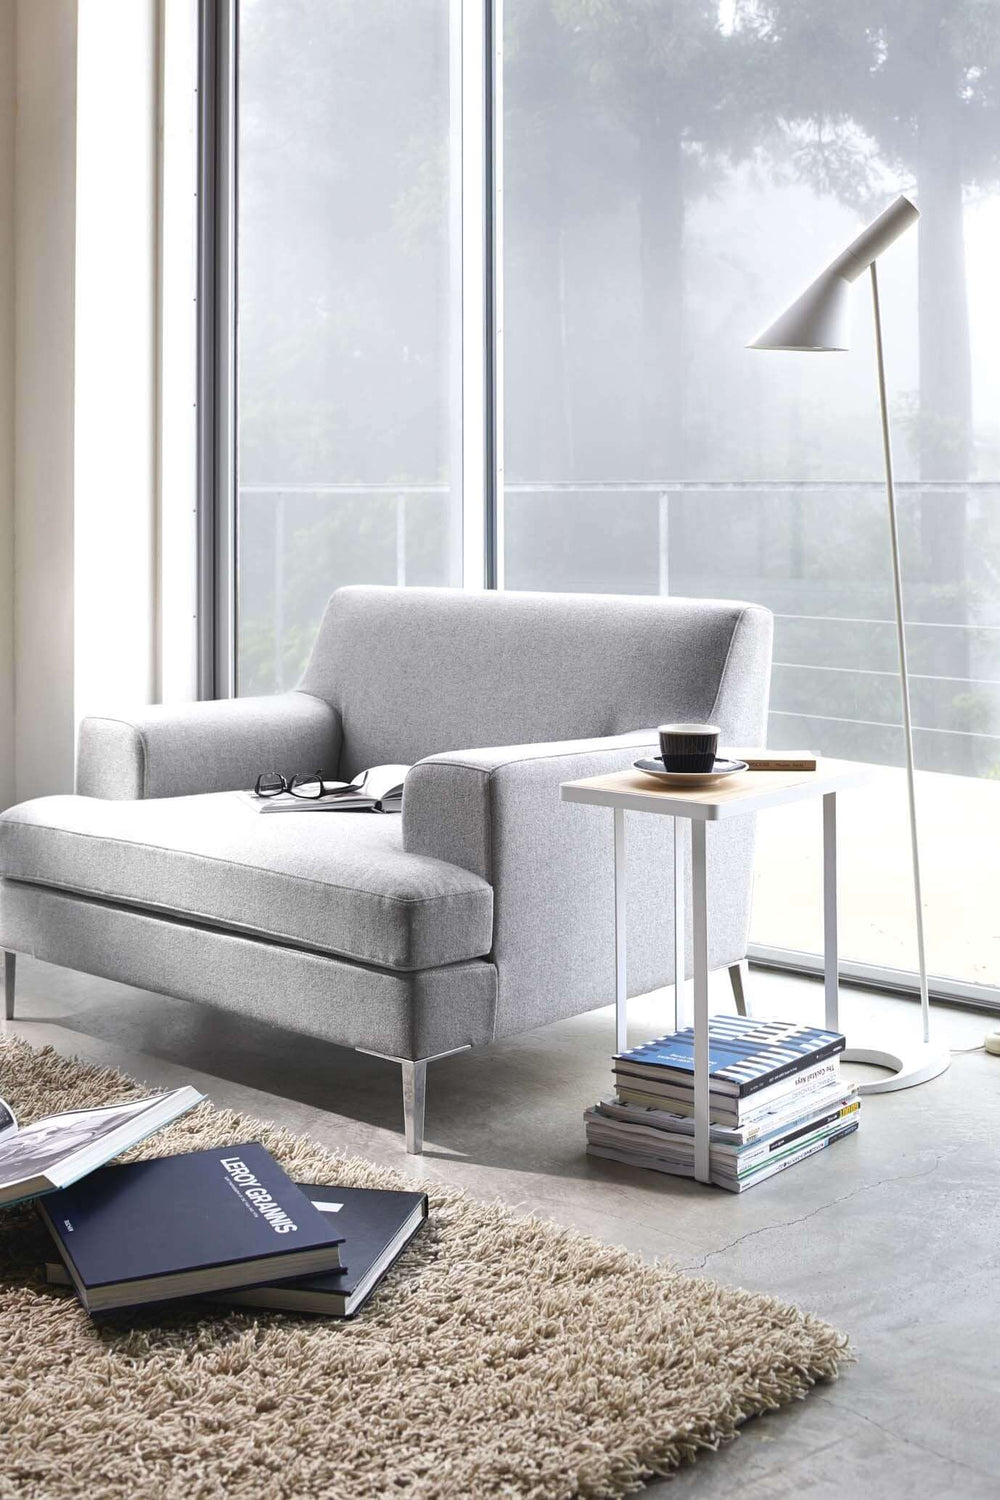 Yamazaki's White accent table stacked with magazines, positioned next to modern gray chair in a sunny room.